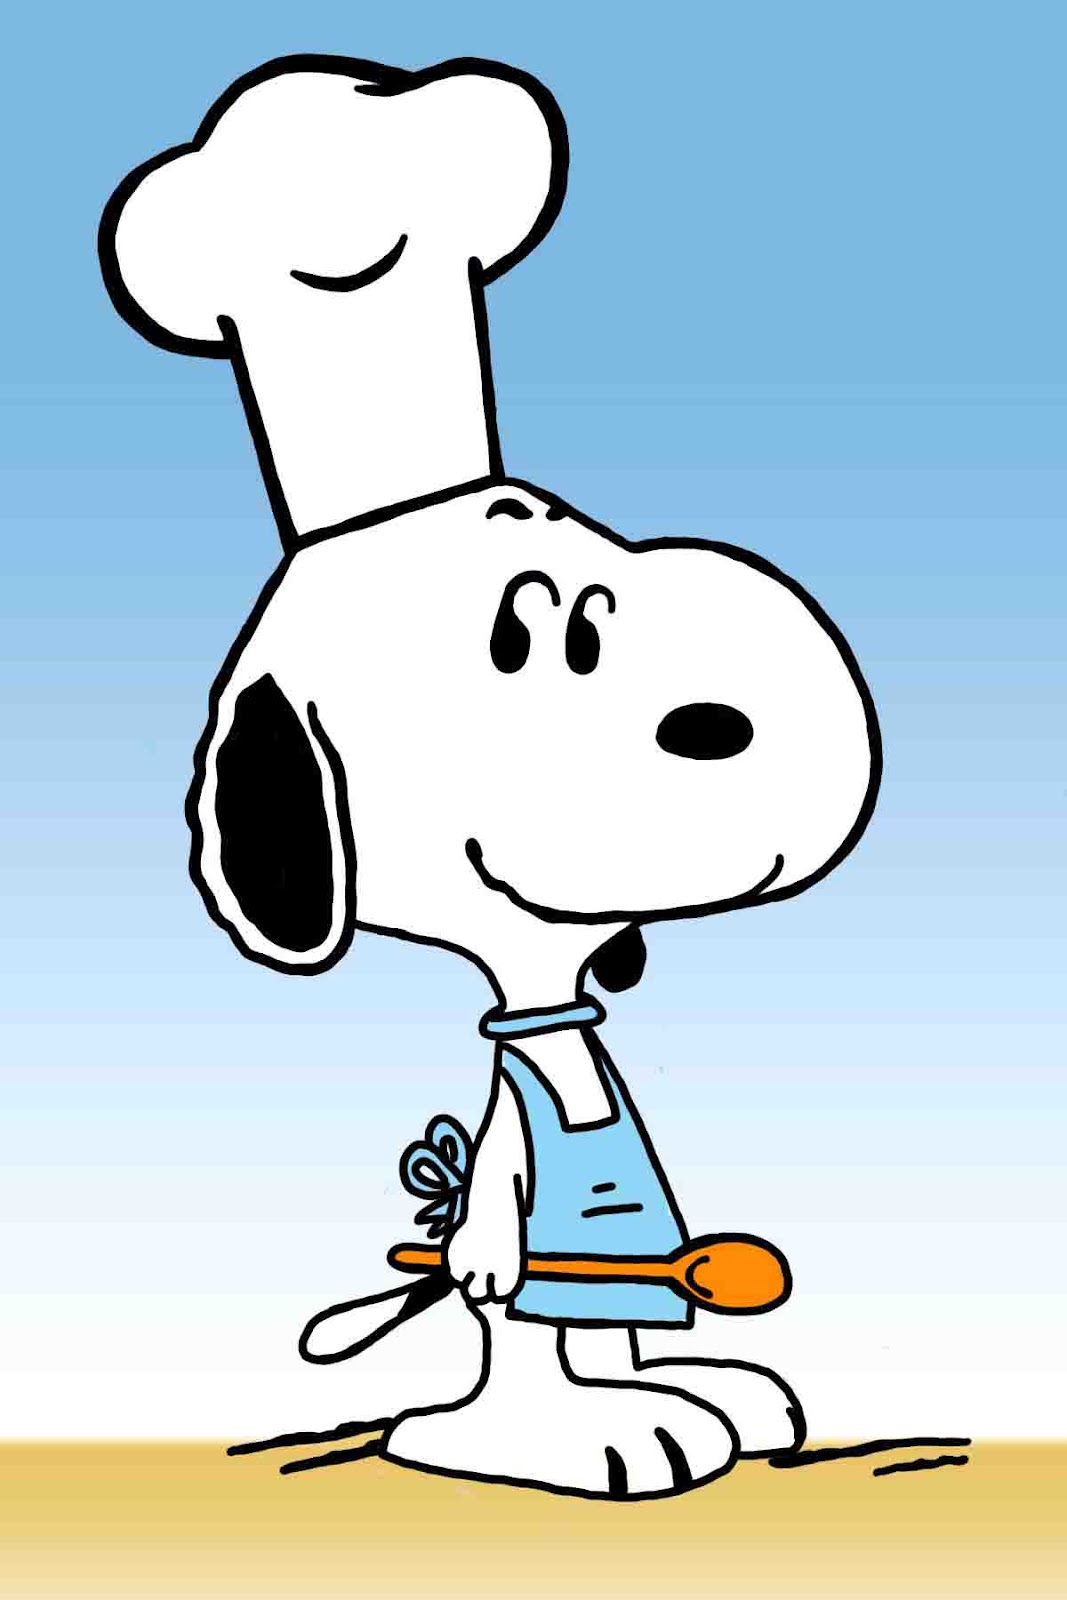 Inspirational clipart snoopy Inspiration Free Art Snoopy and